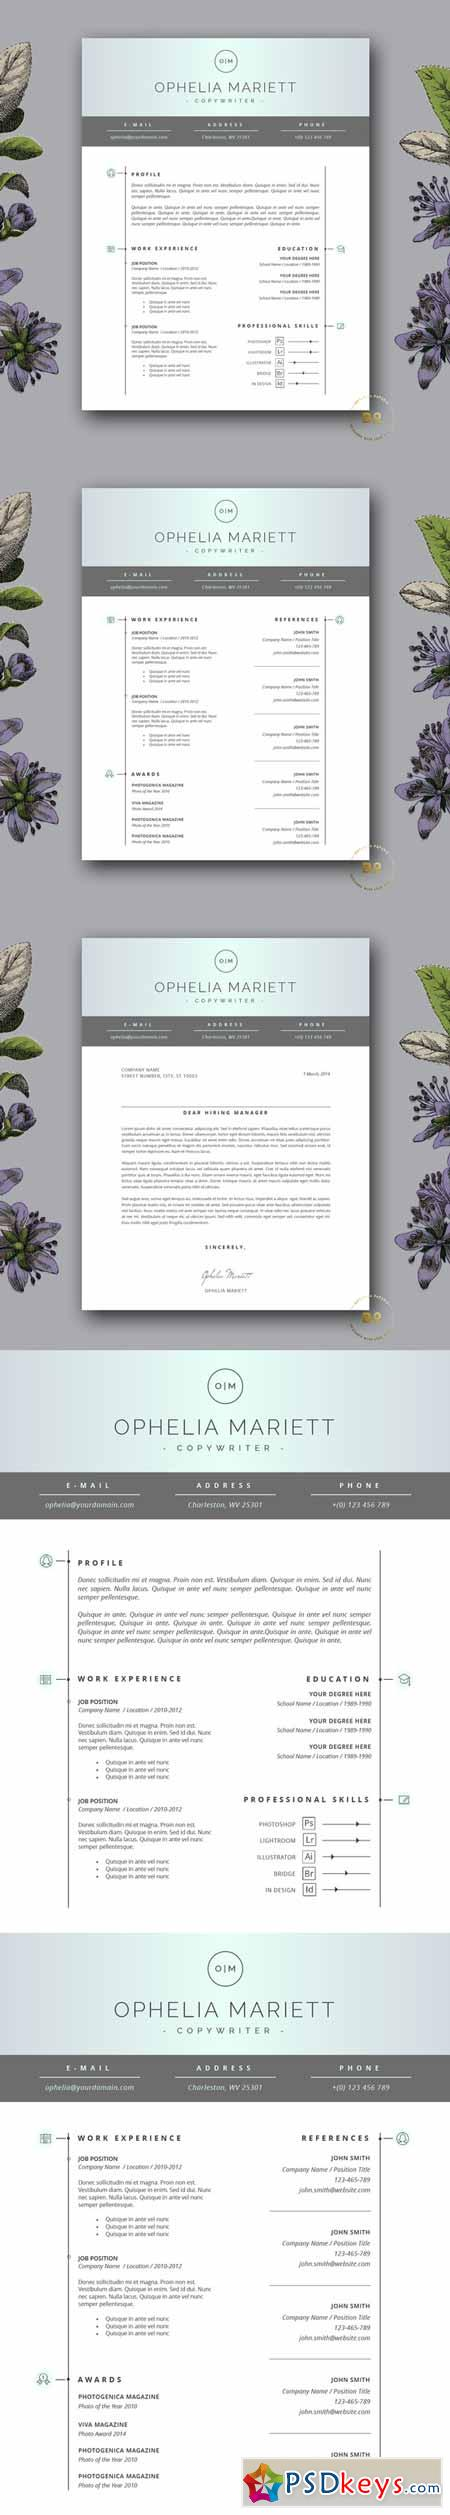 Modern Resume Template Cv Design   Free Download Photoshop